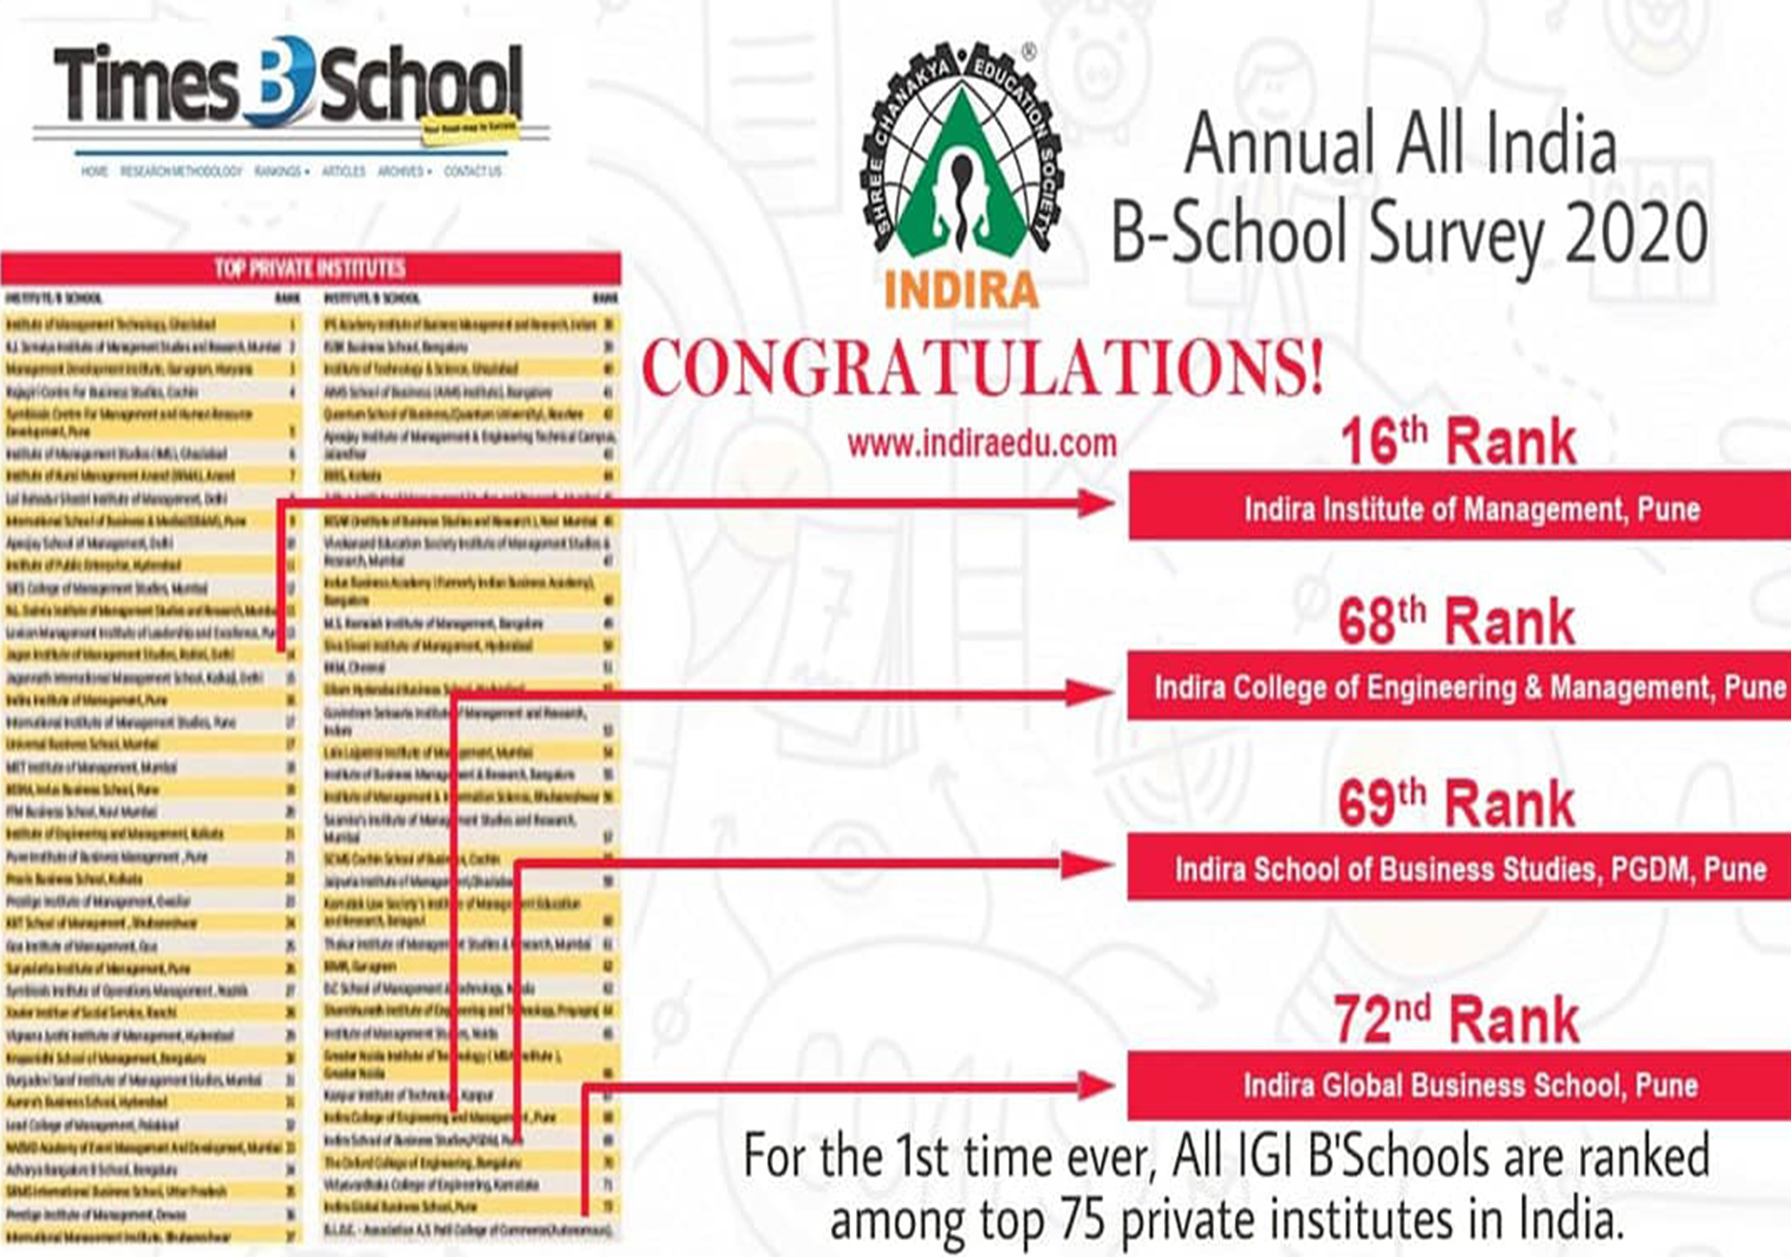 IGI B' Schools are ranked among the top 75 private institutes in India.